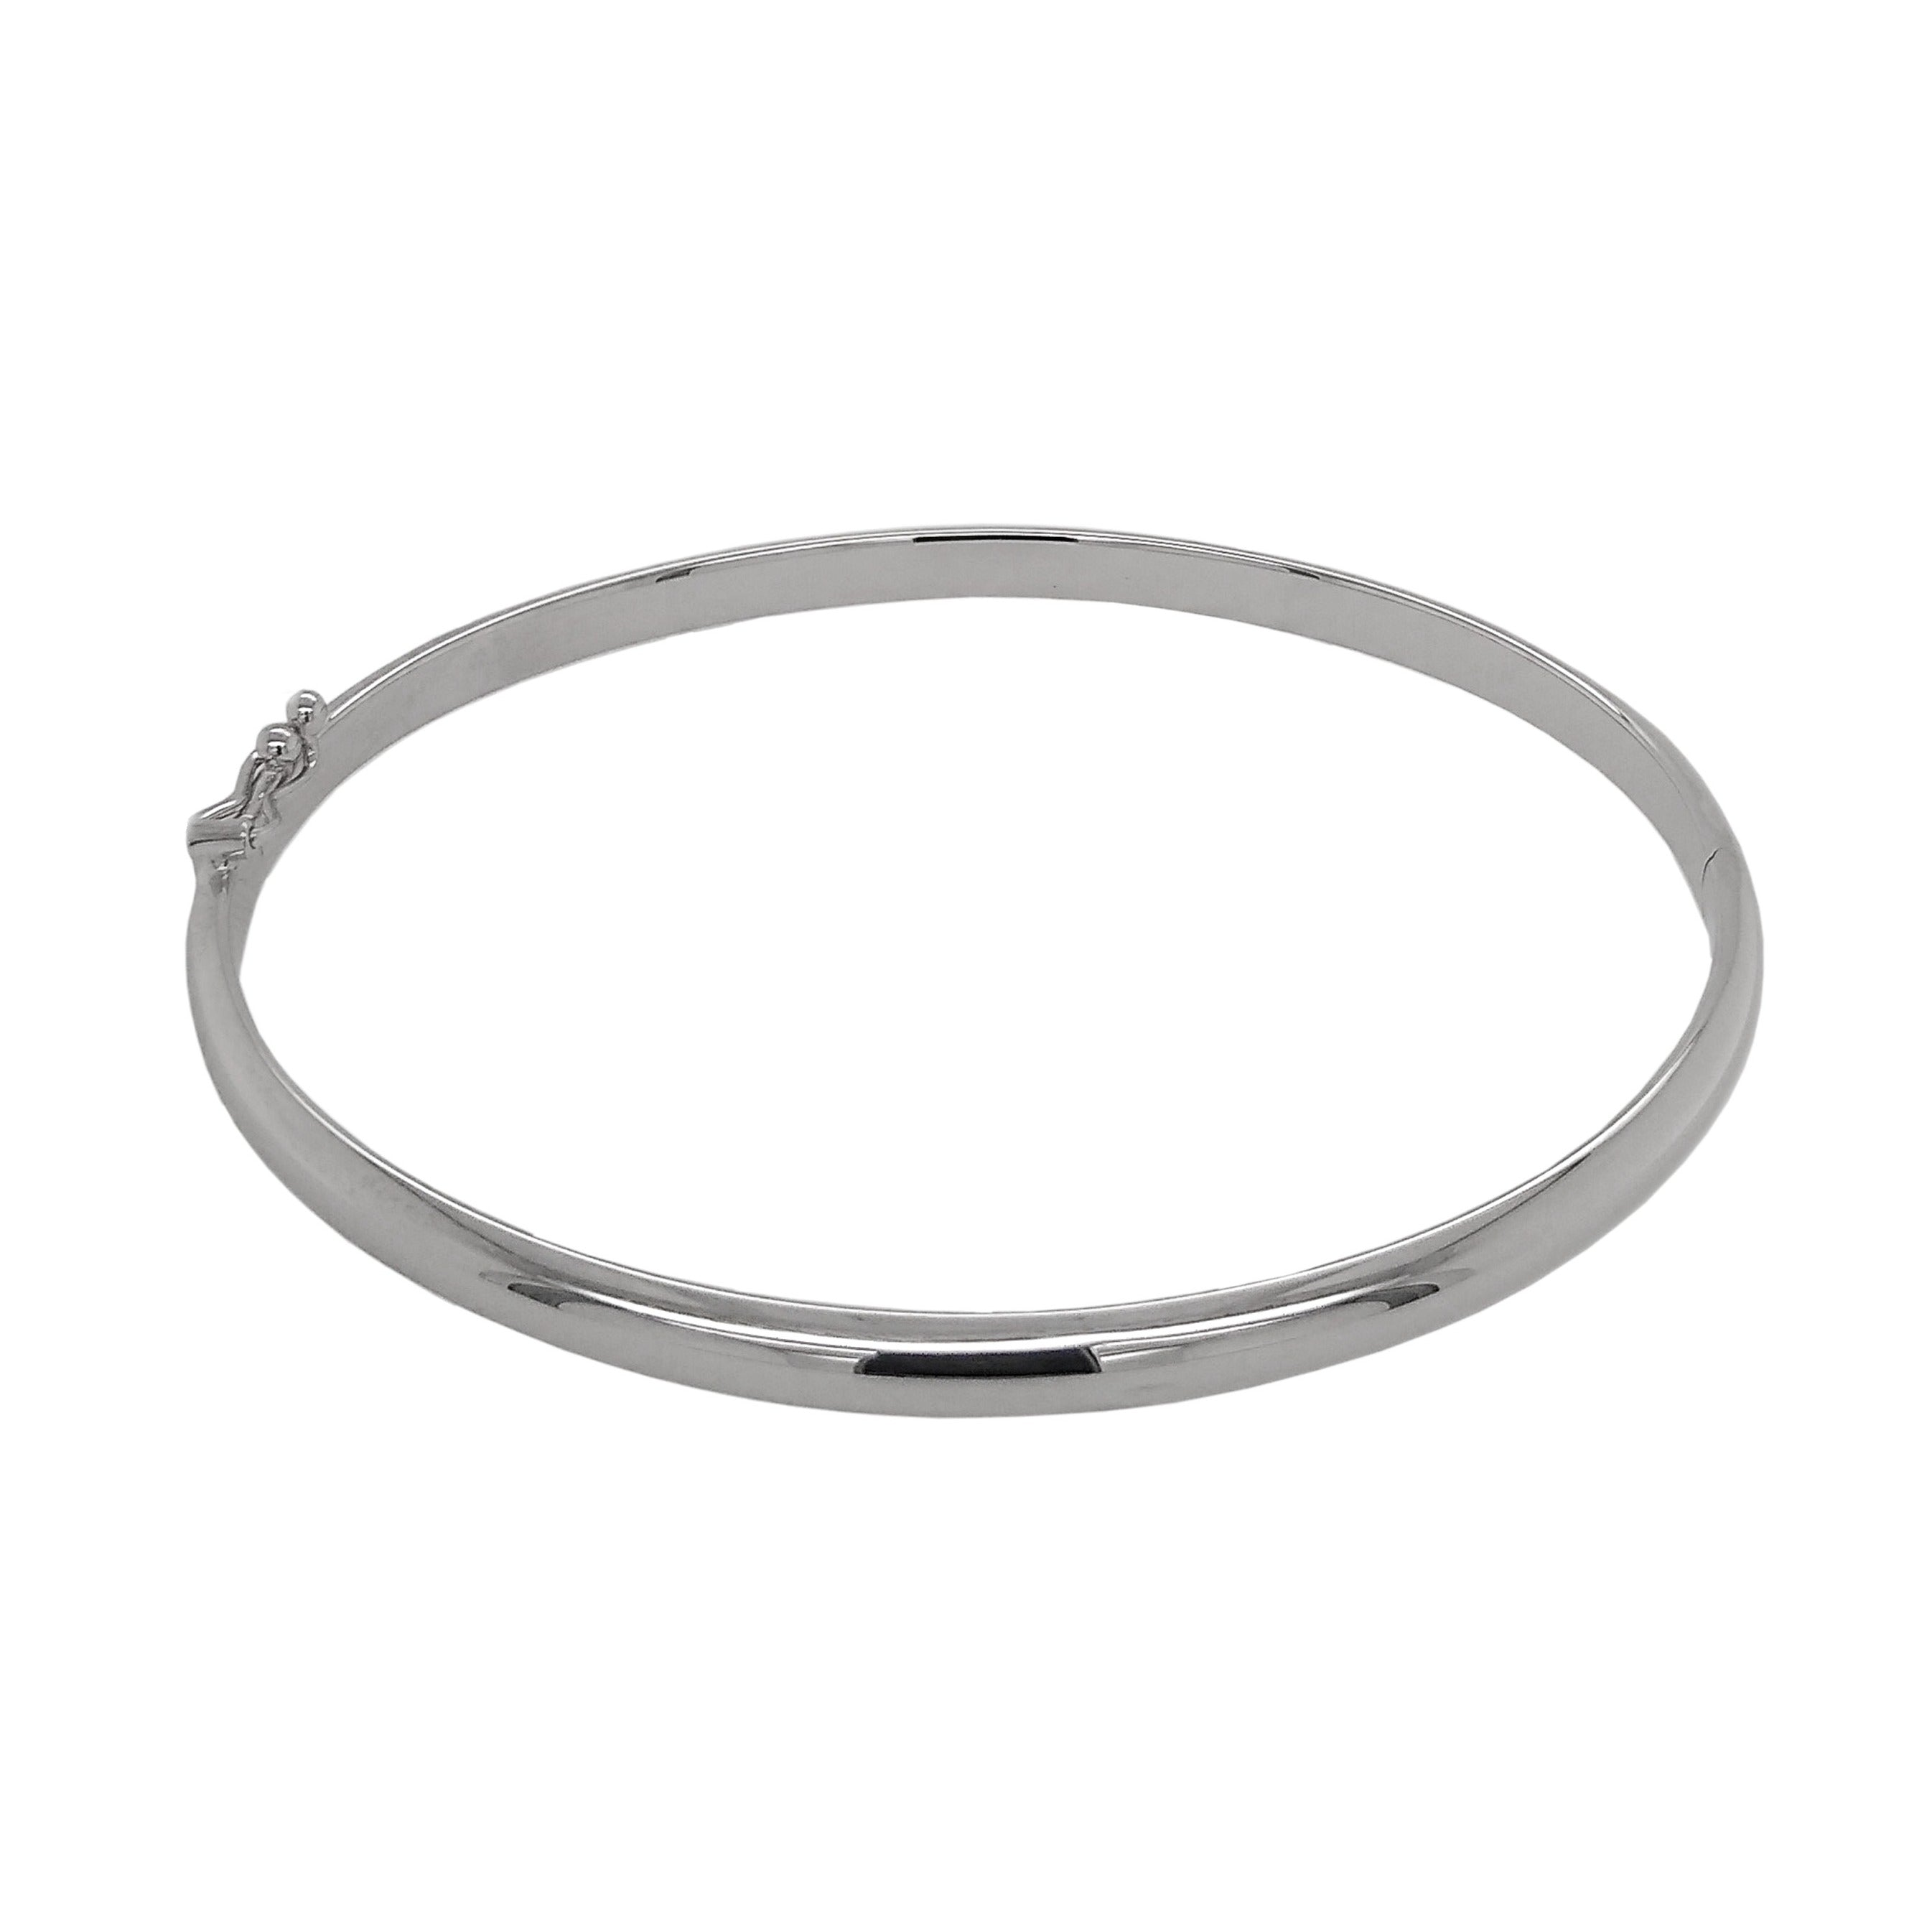 9ct White Gold D-Shaped Hinged Bangle